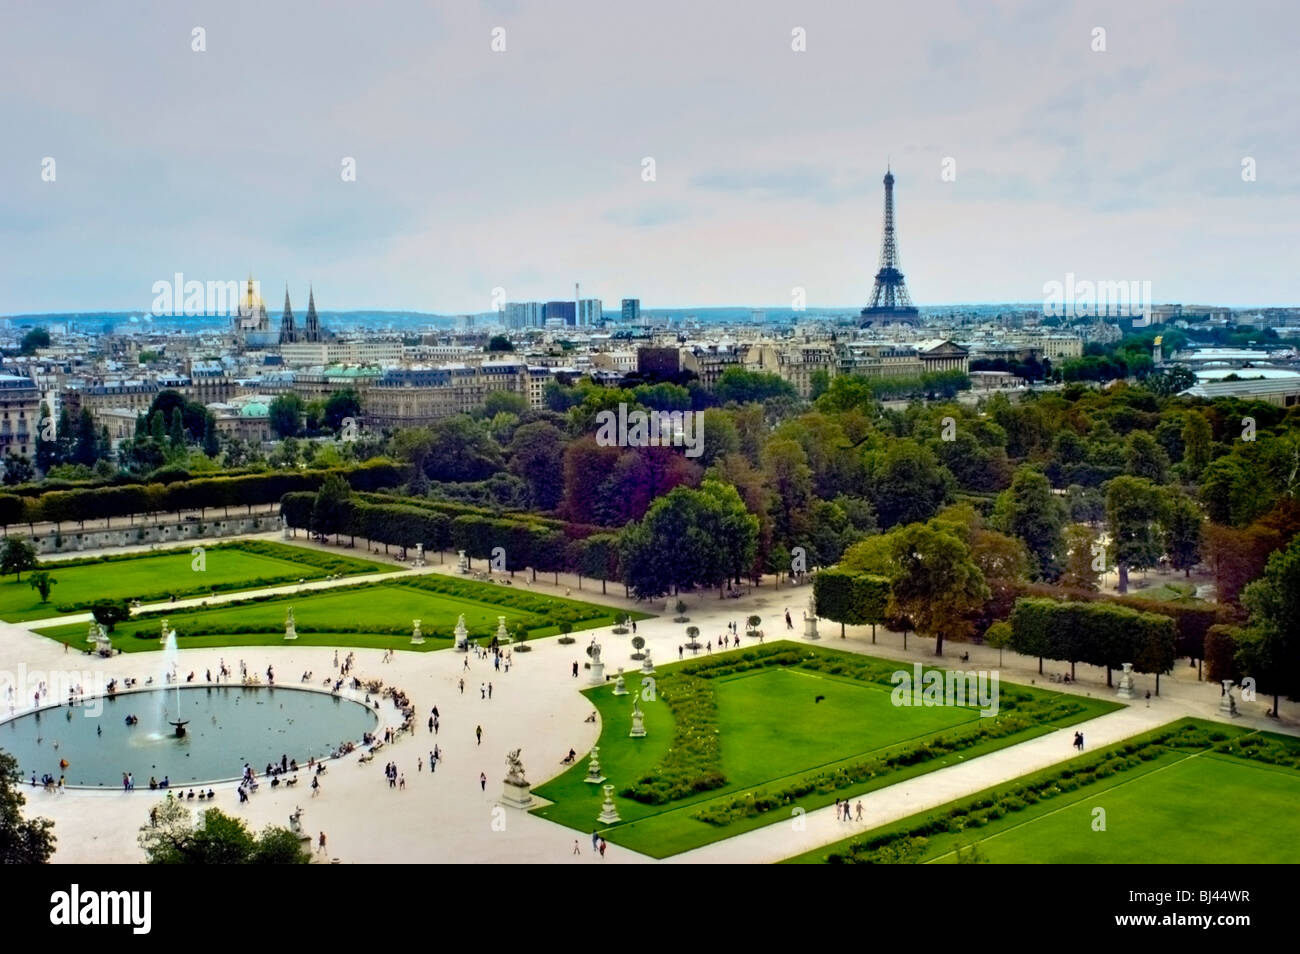 paris france overview of tuileries garden jardin des tuileries stock photo 28365843 alamy. Black Bedroom Furniture Sets. Home Design Ideas